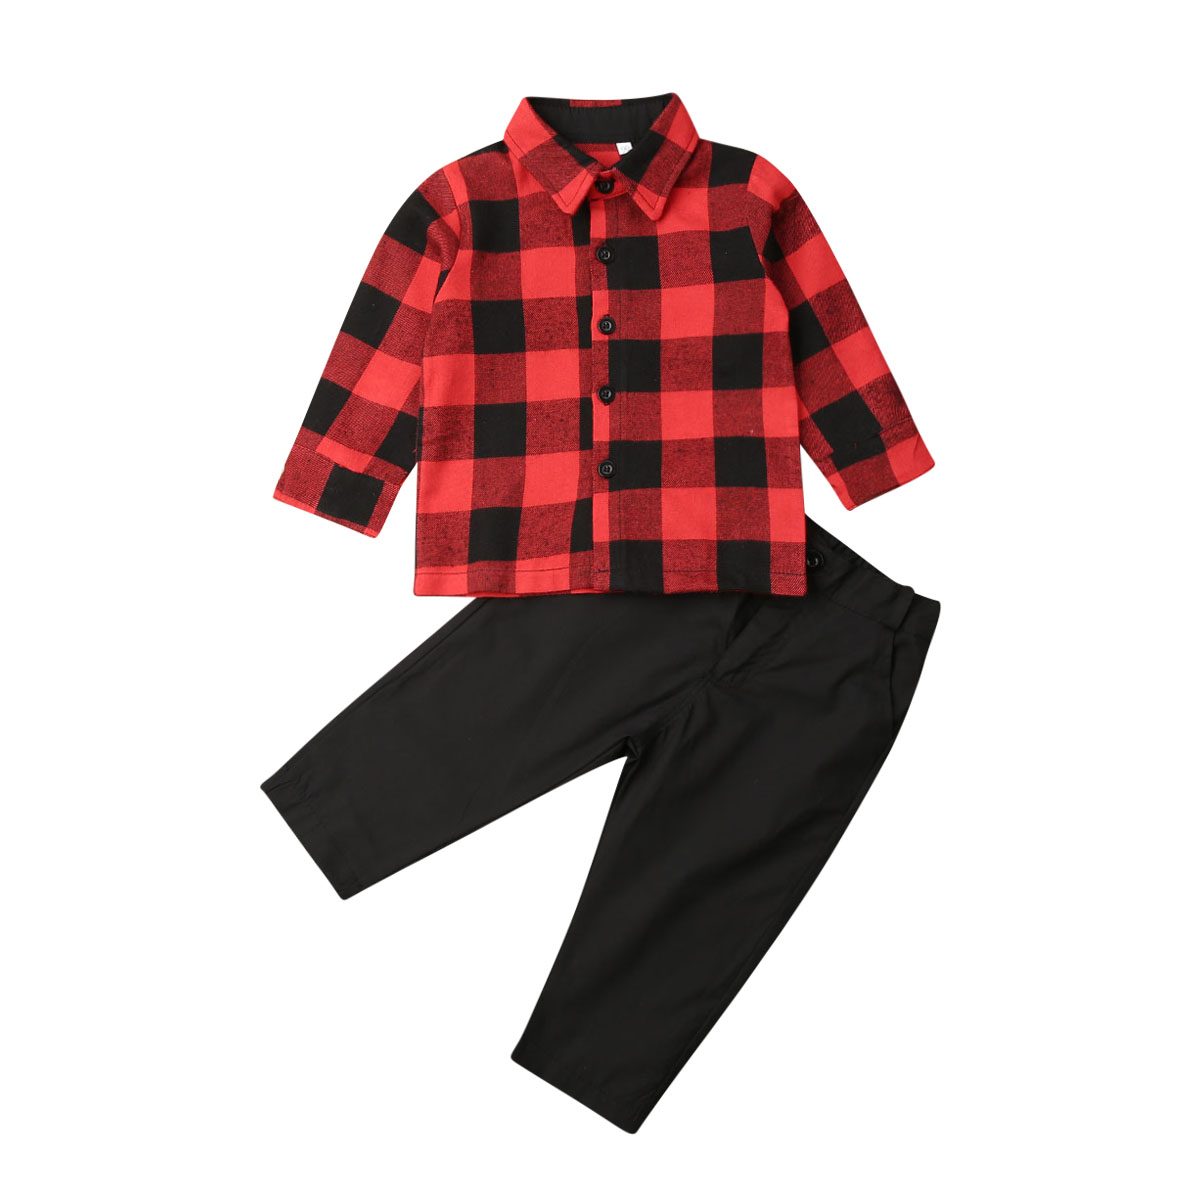 1-6Y Christmas Toddler Kid Baby Boy Clothing Set Red Plaid Shirt Tops Pants Outfits Kids Gentleman Formal Suit Autumn Costumes